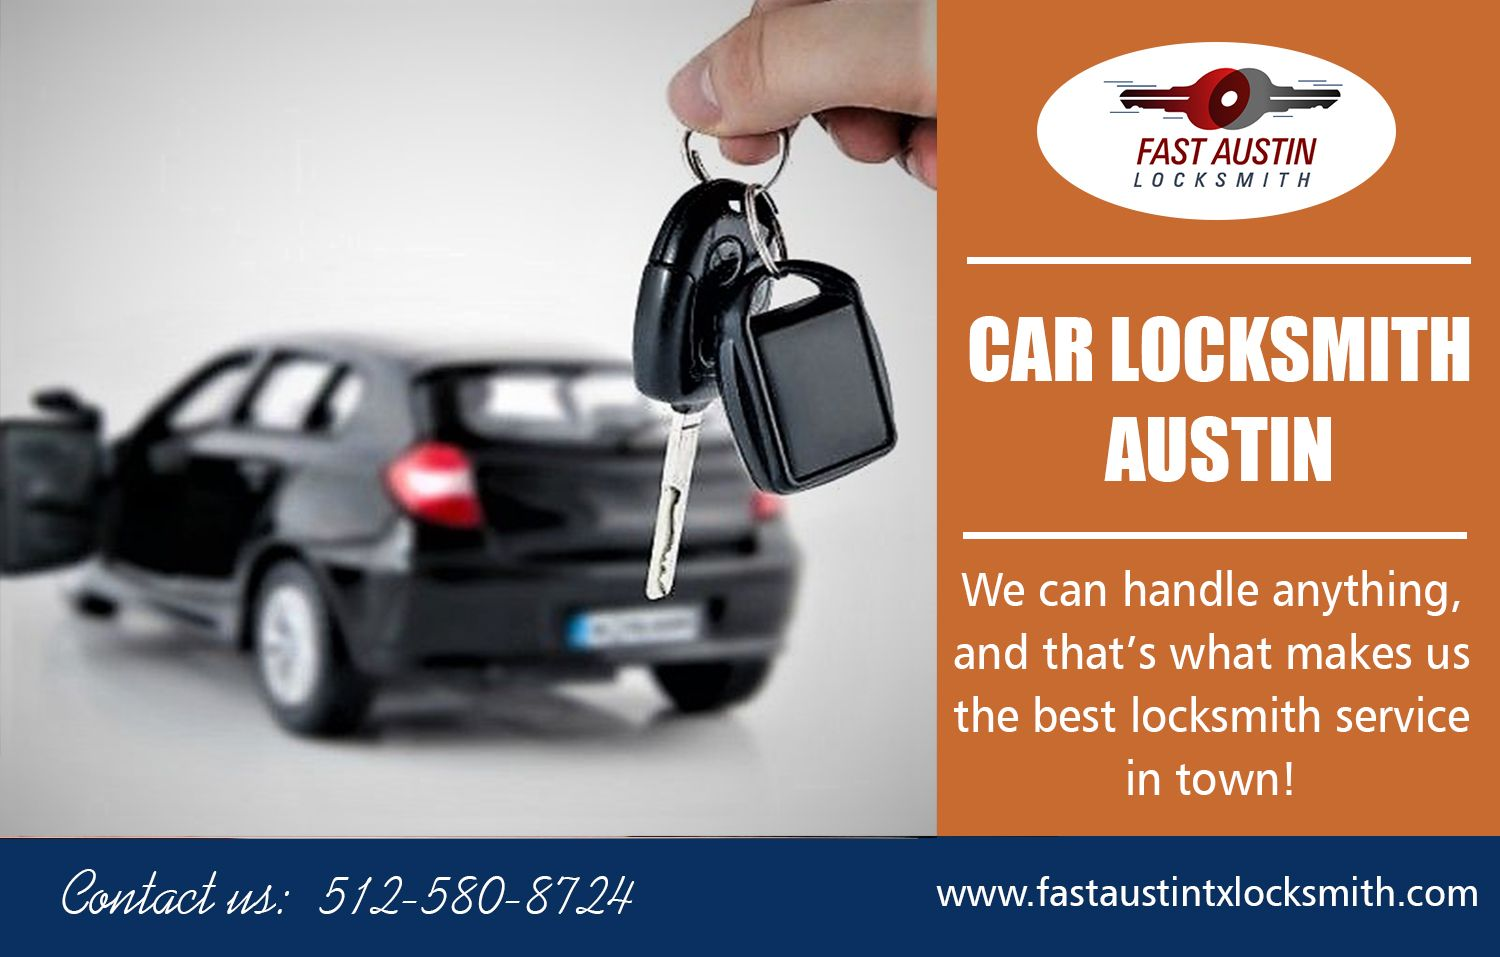 Many of you often lose your car keys  Lost car keys are